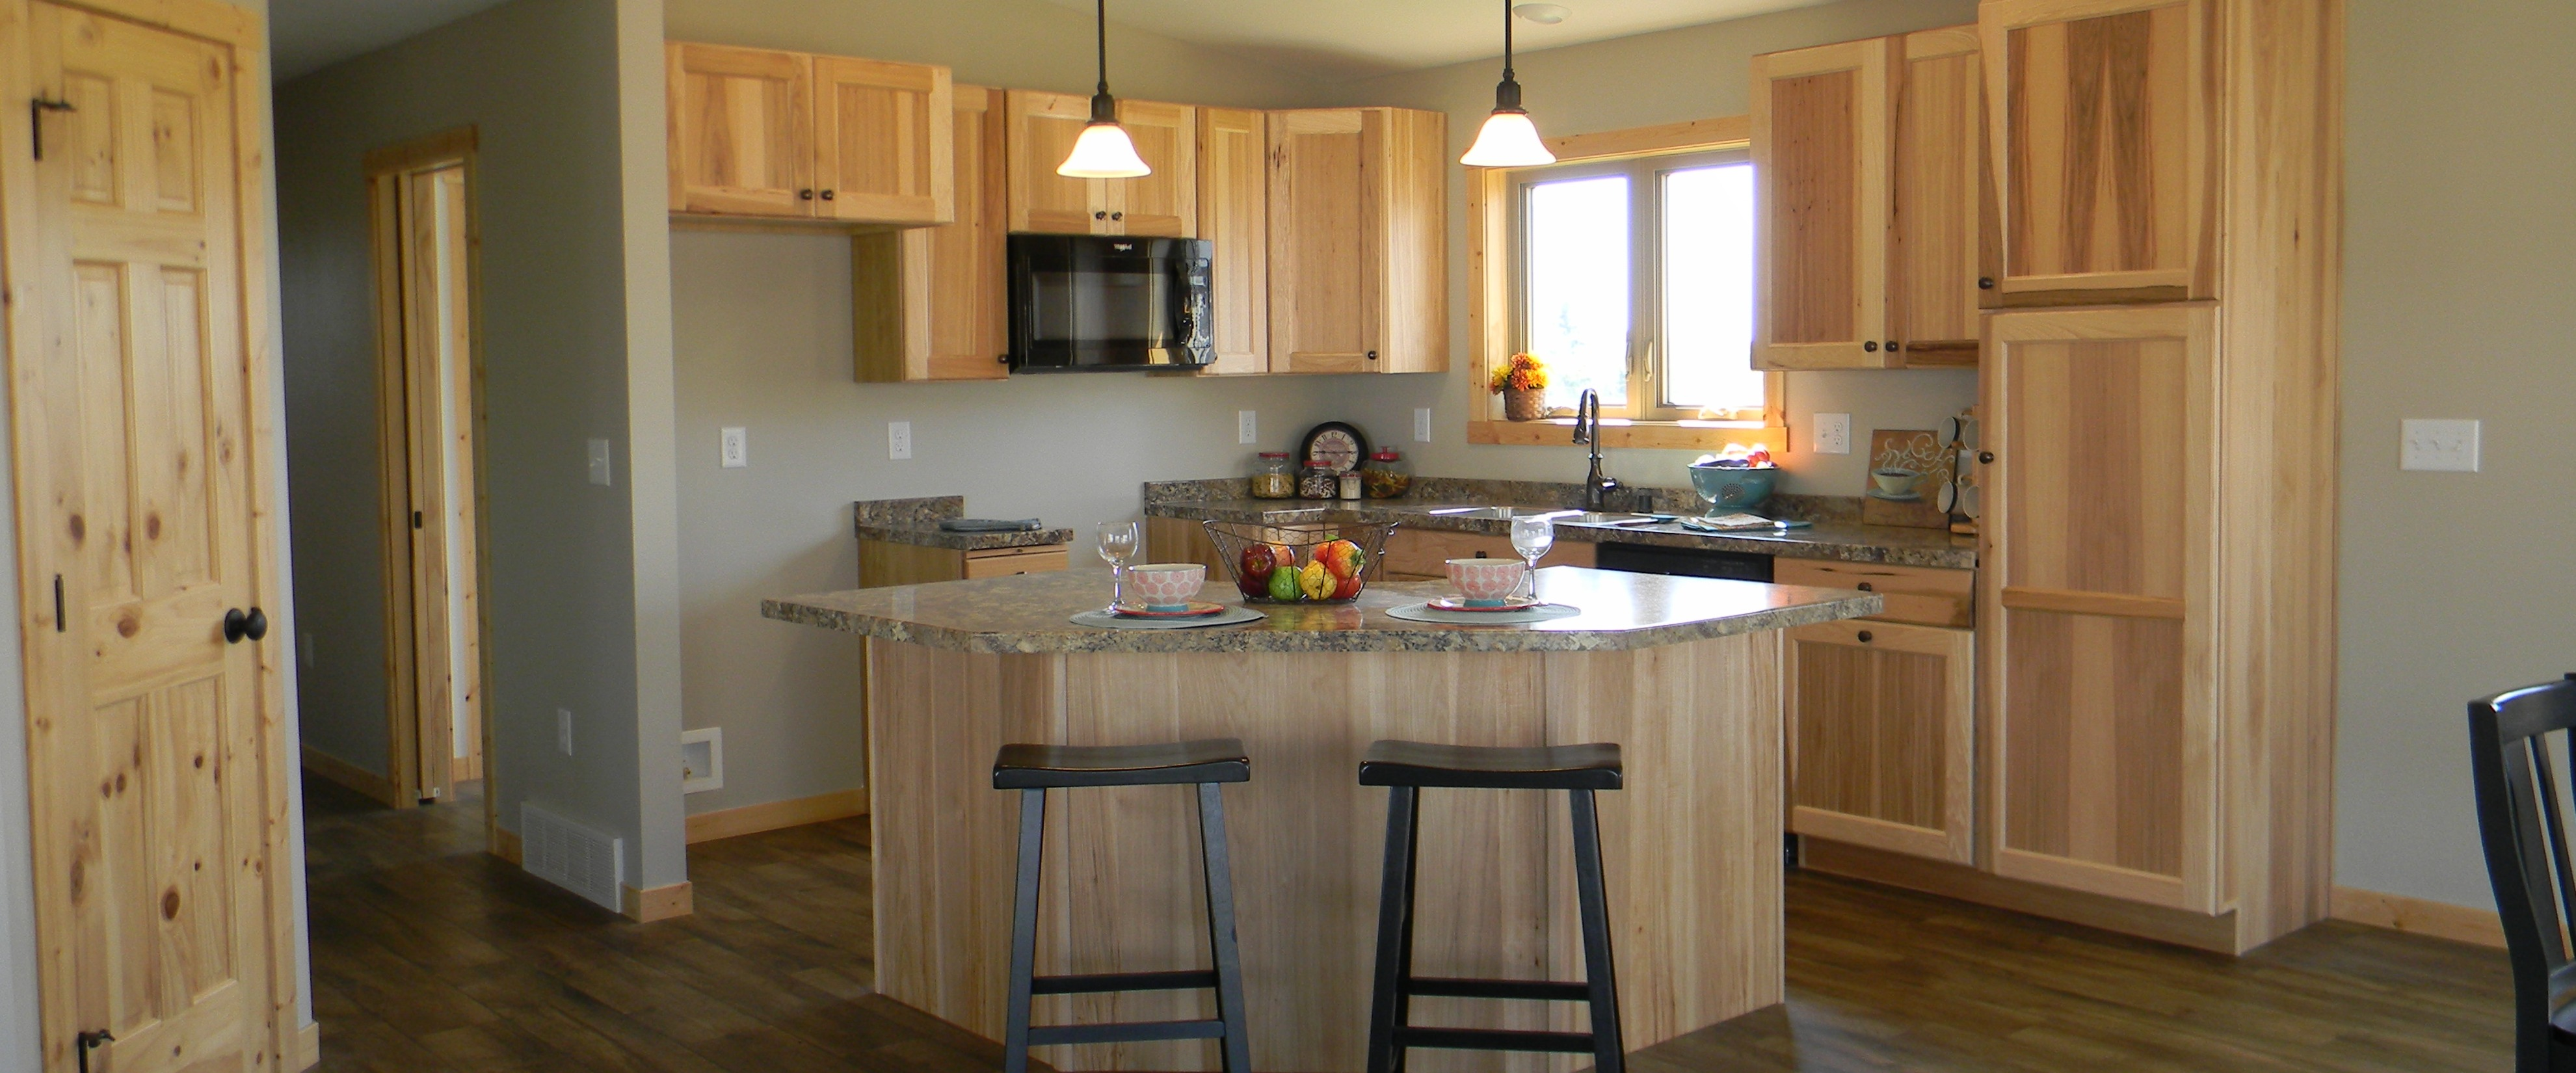 Ideal Homes of Barnum: MN- Modular, Manufactured Home Builder & More